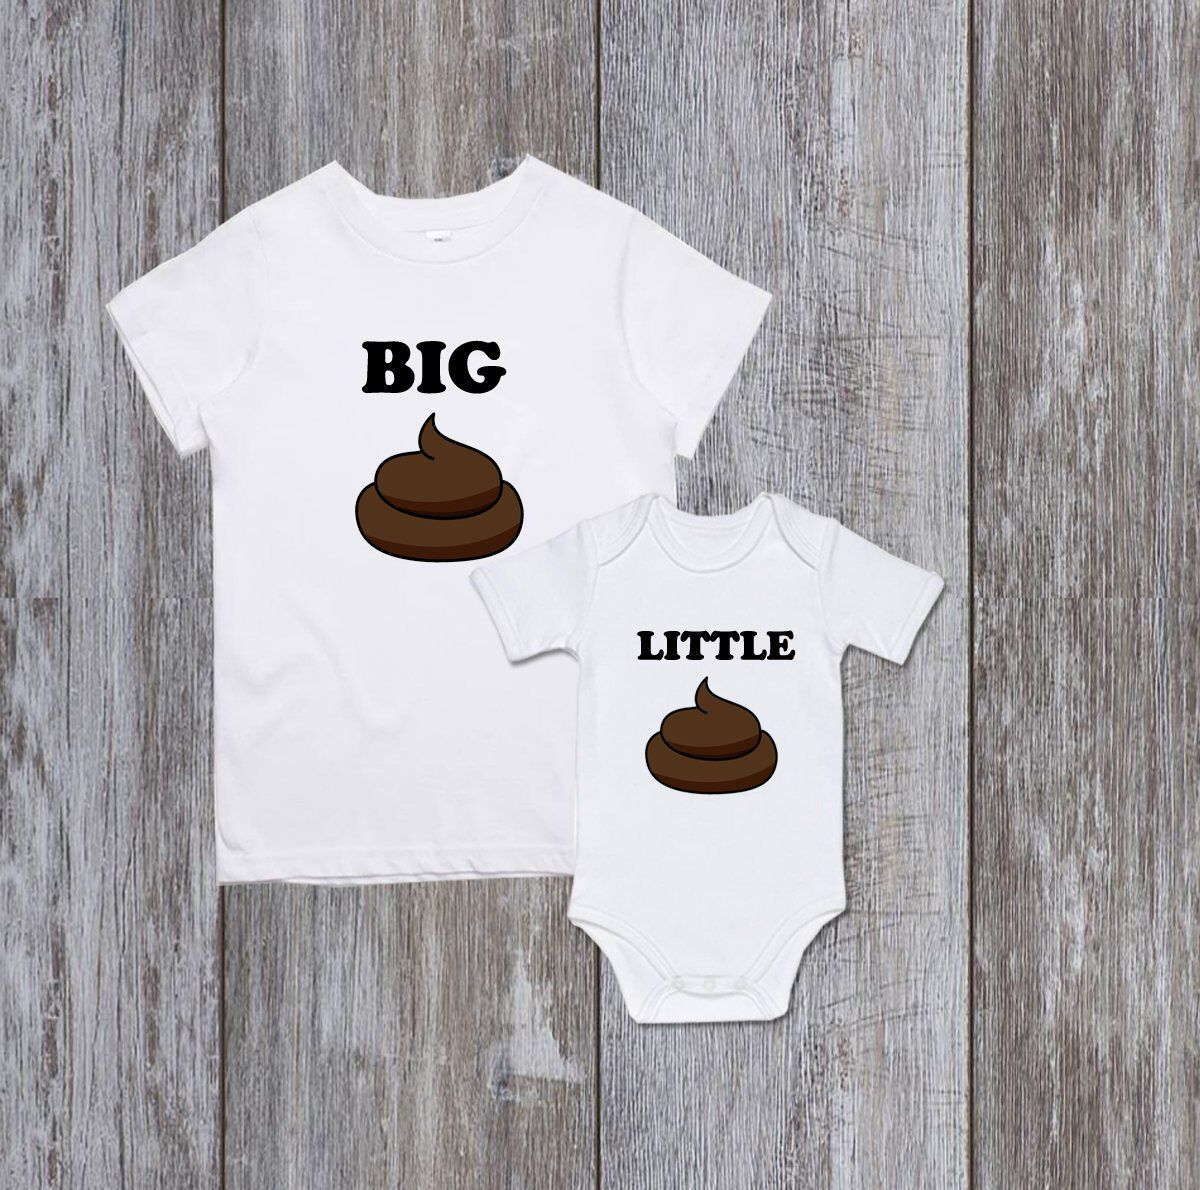 4045298c Excited to share the latest addition to my #etsy shop: Dad and baby matching  shirts Funny shirts Dad and son shirts Fathers day gift Father son shirts  Big ...